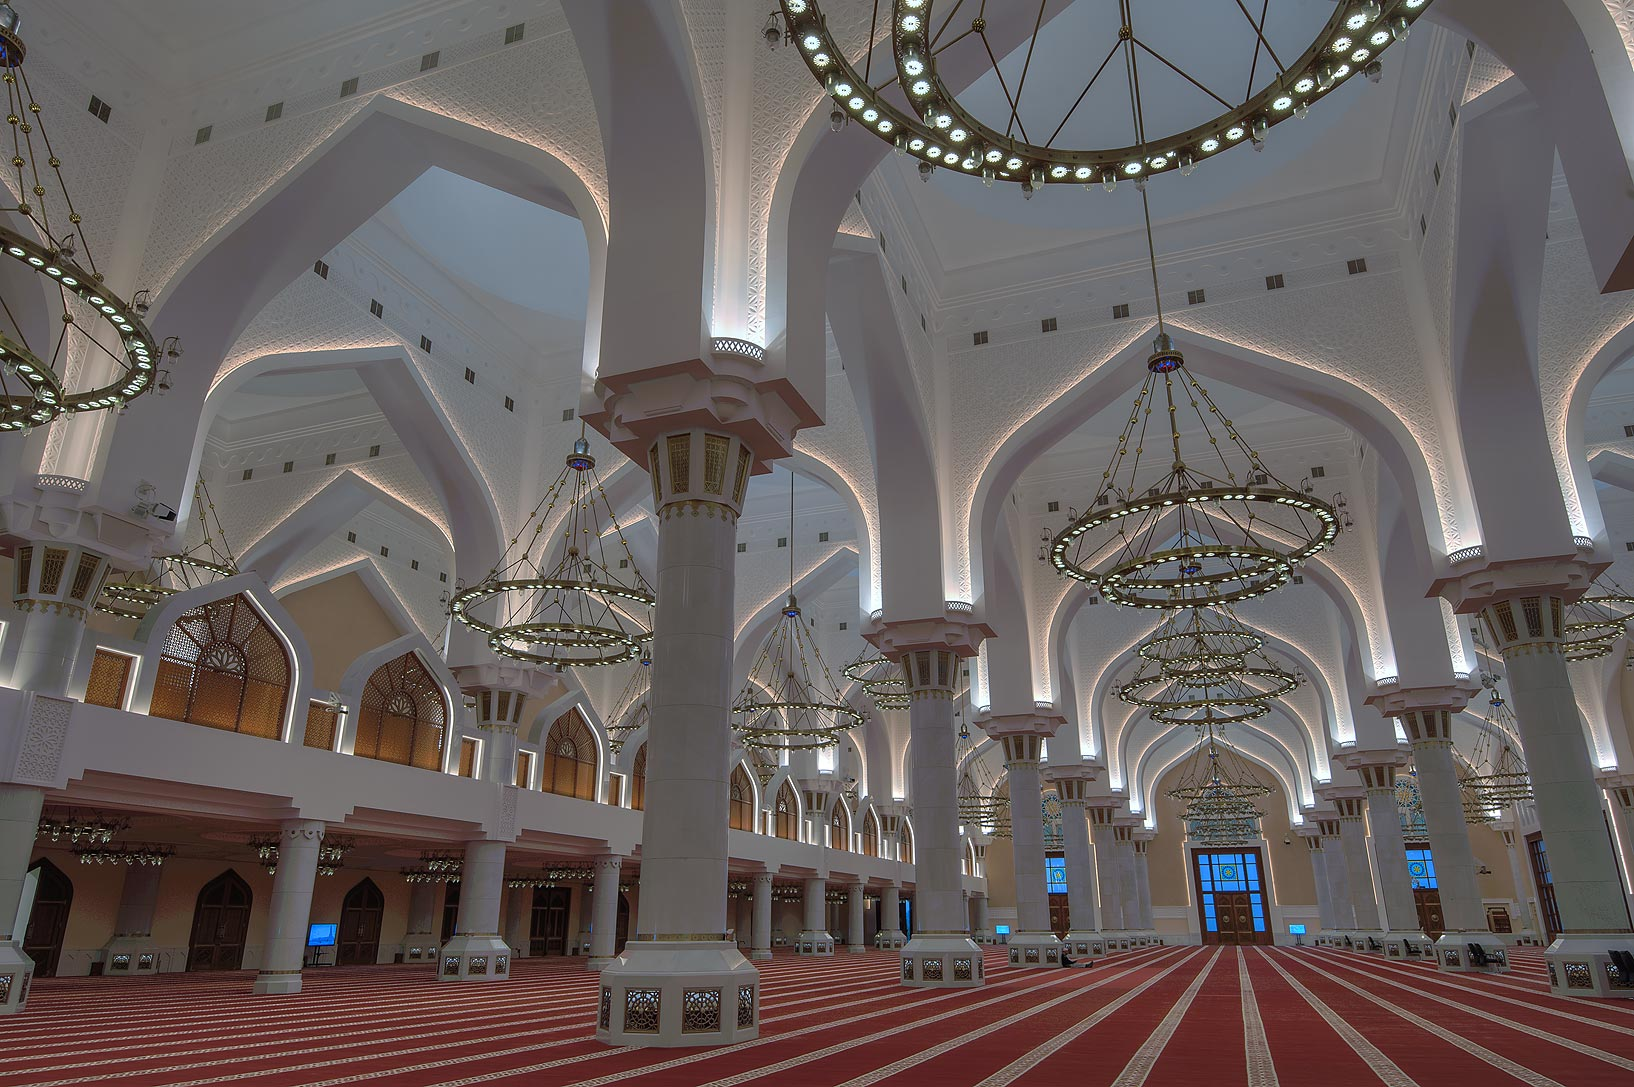 Vaults and columns of prayer hall of State Mosque...Wahhab Mosque) at morning. Doha, Qatar